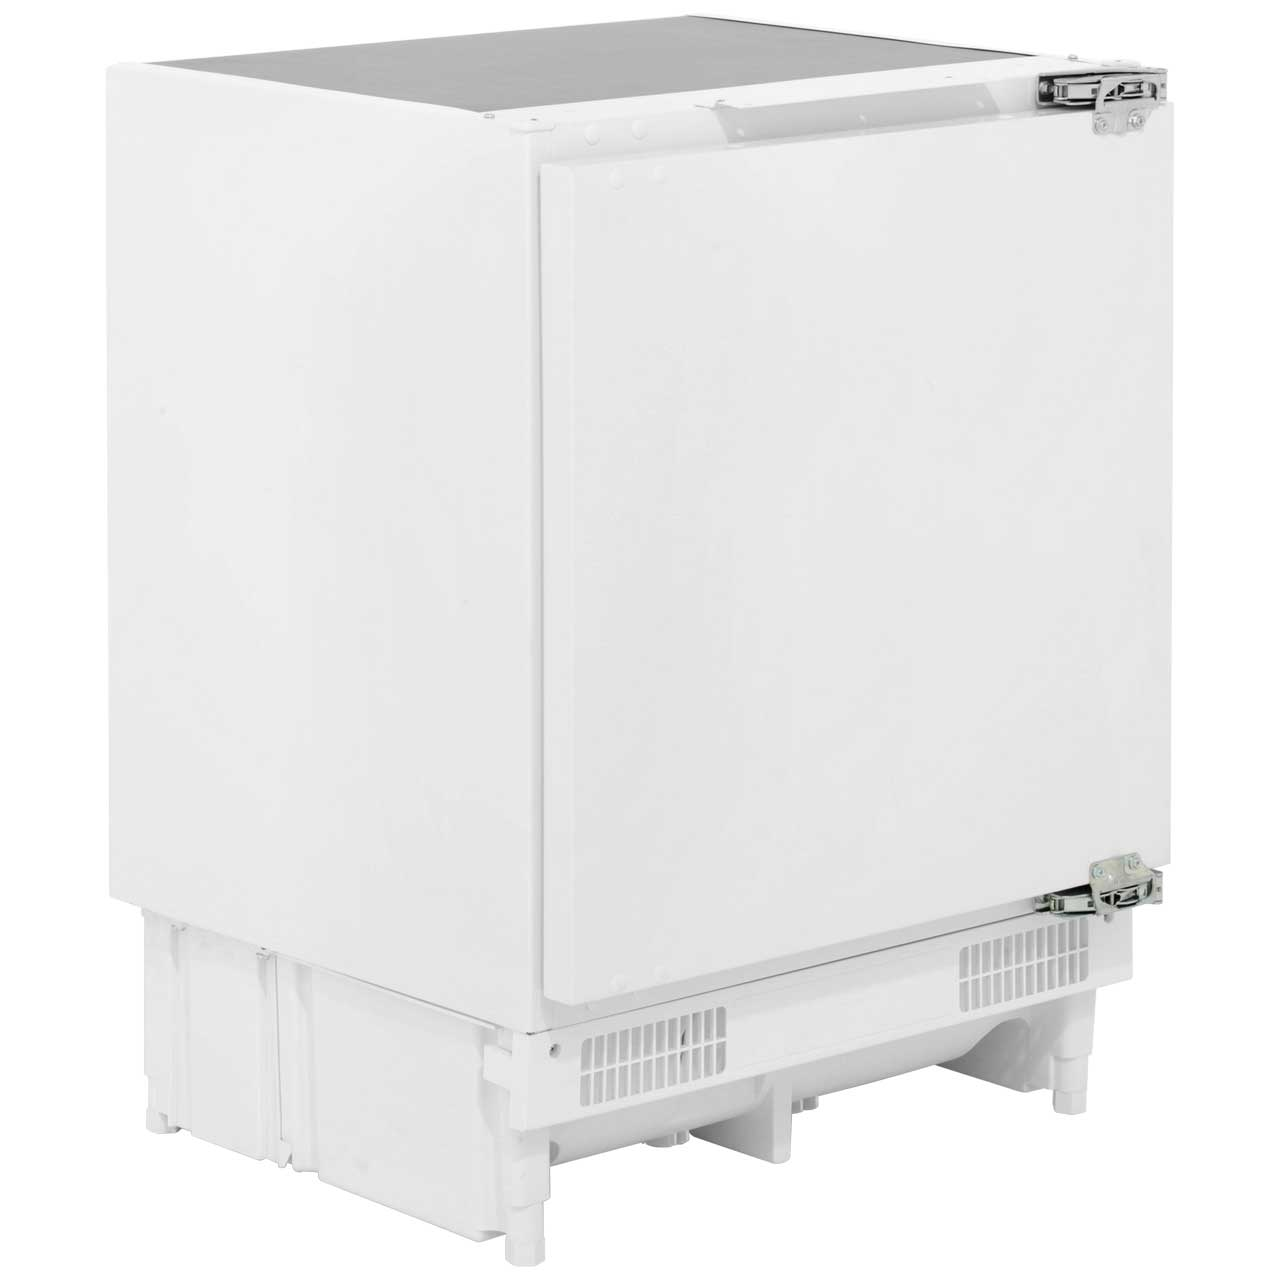 Fridgemaster MBUL60133 Built Under Larder Fridge in White